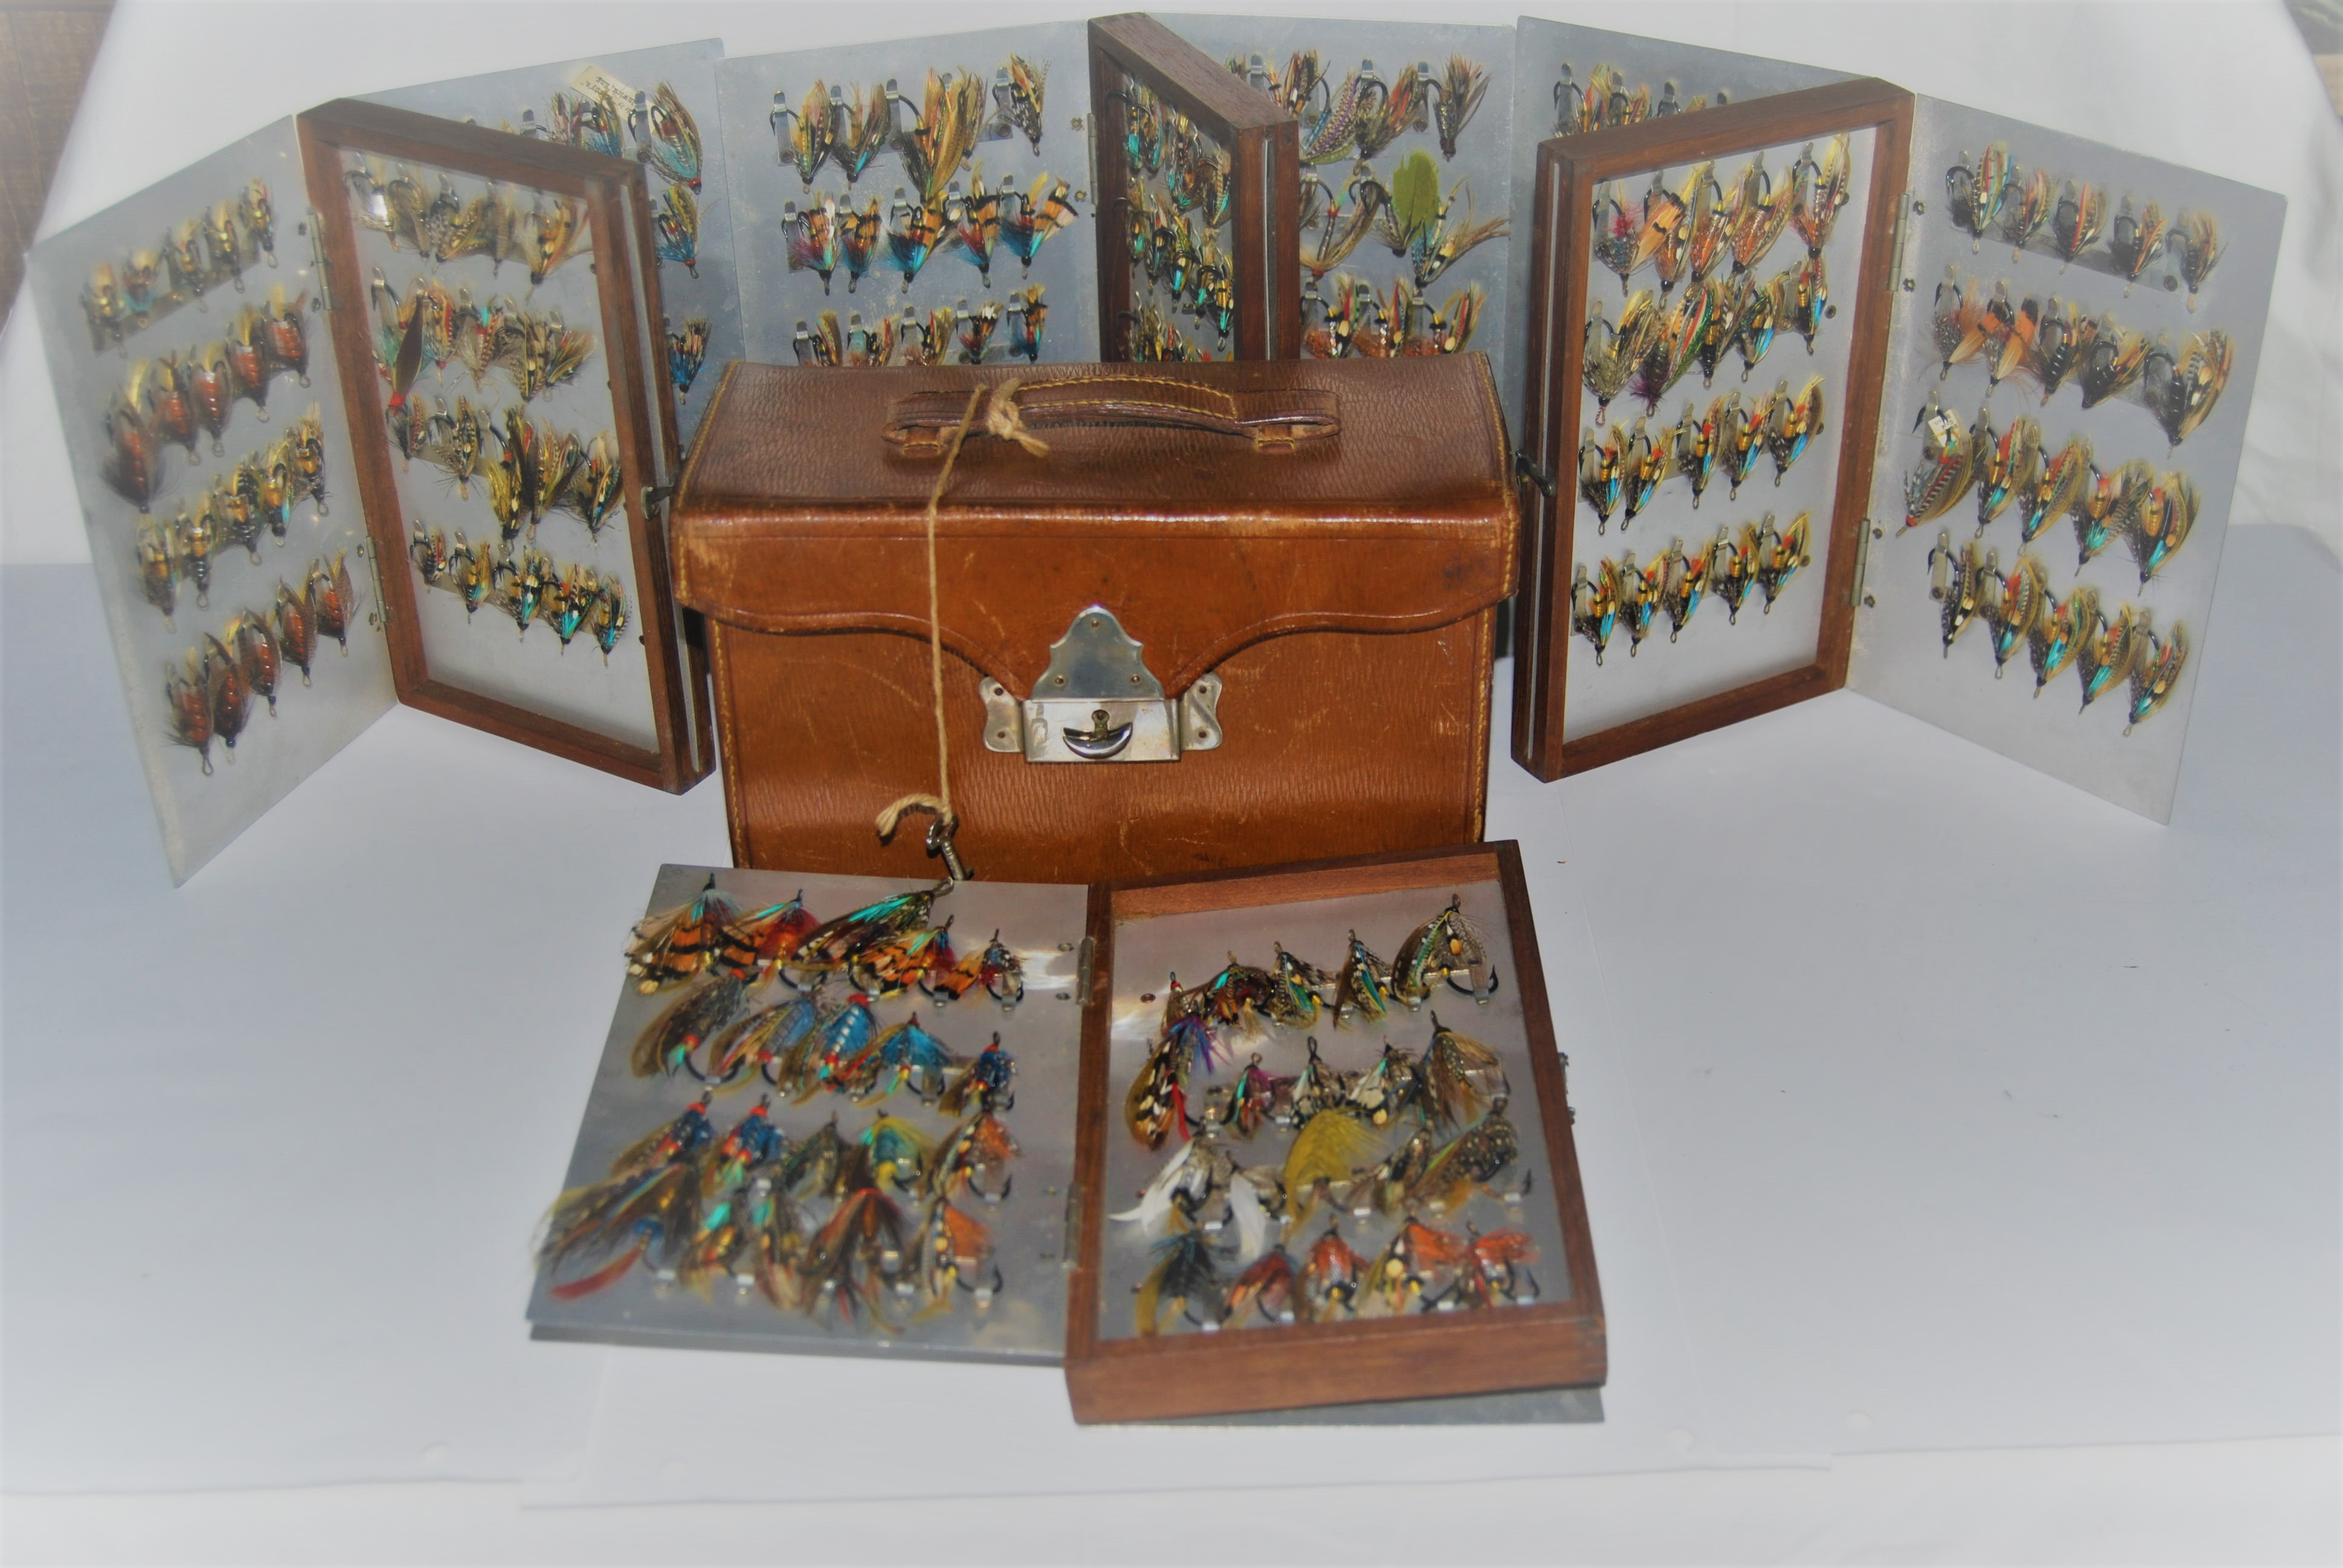 Image for EARLY SALMON FLY STOCK CASE WITH FOUR WALLET INSERTS Holding 320 GUT-EYED FULL DRESSED SALMON FLIES on Salmon Fly Clips.   8 1/2 in. x 5 in. x 4 1/4 in. Circa 1911-1918.  SOLD